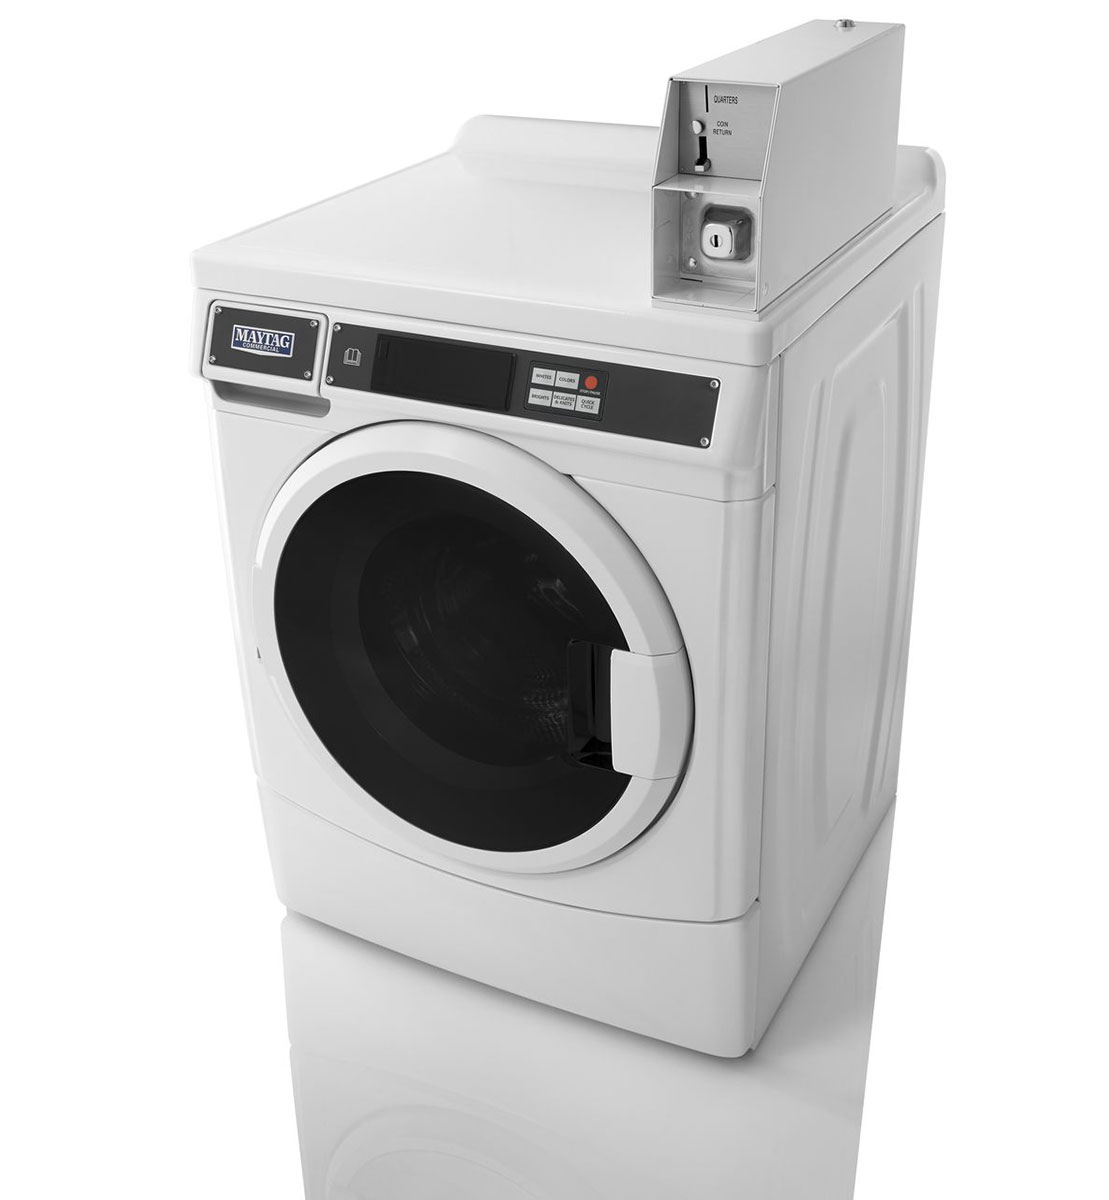 Maytag Mhn33pd Washer